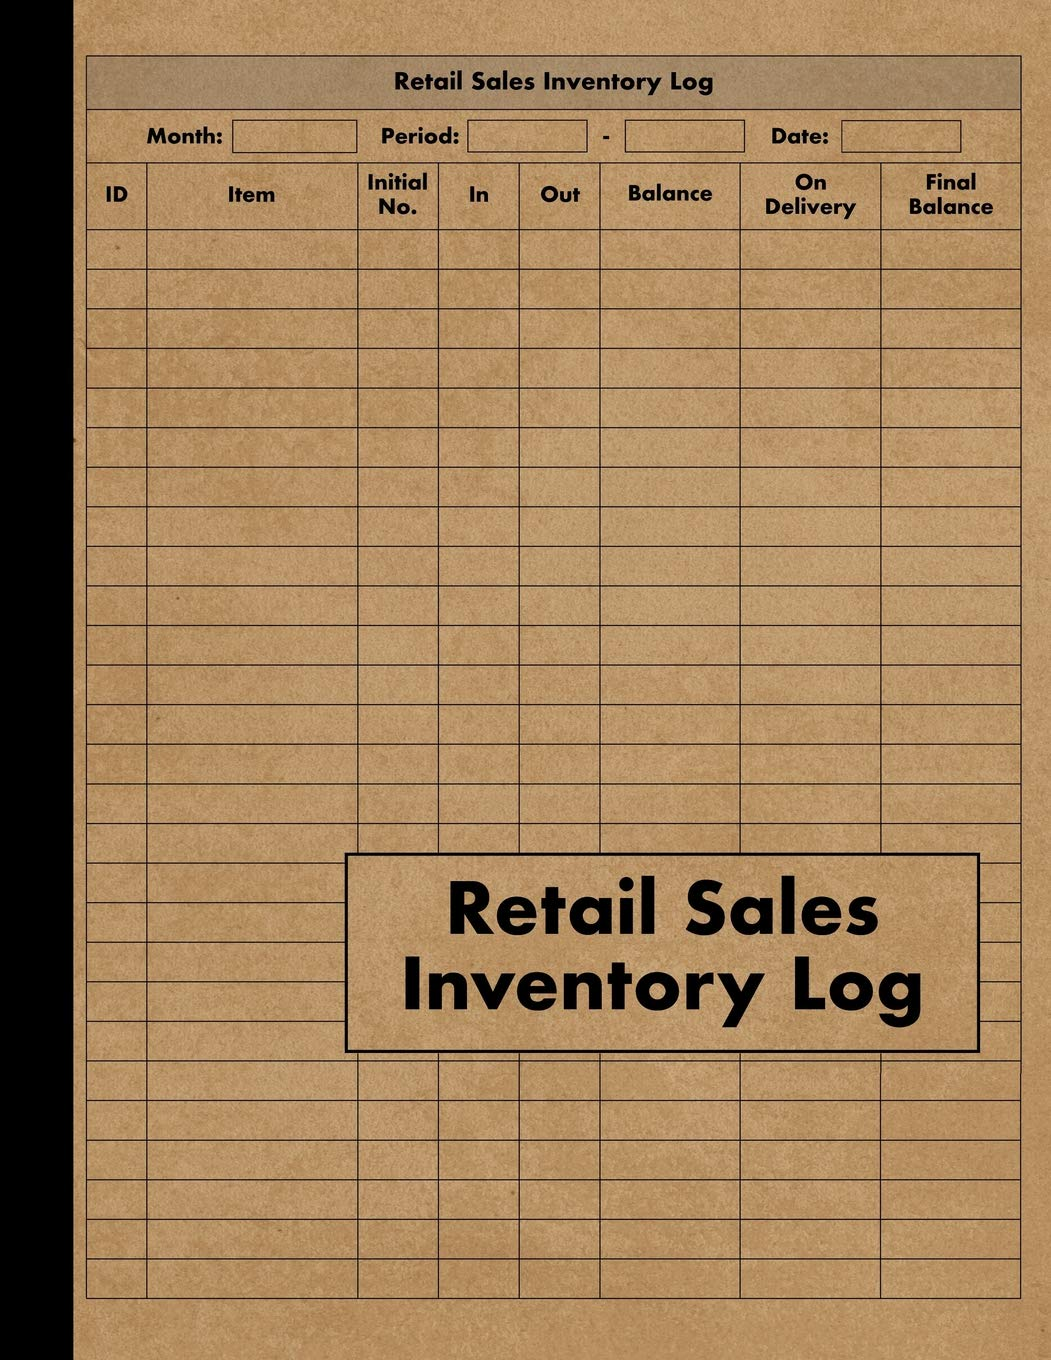 Full Size of Retail Inventory Large Book Management For Business Stock And Supplies Perfect Bound At Spreadsheet Template